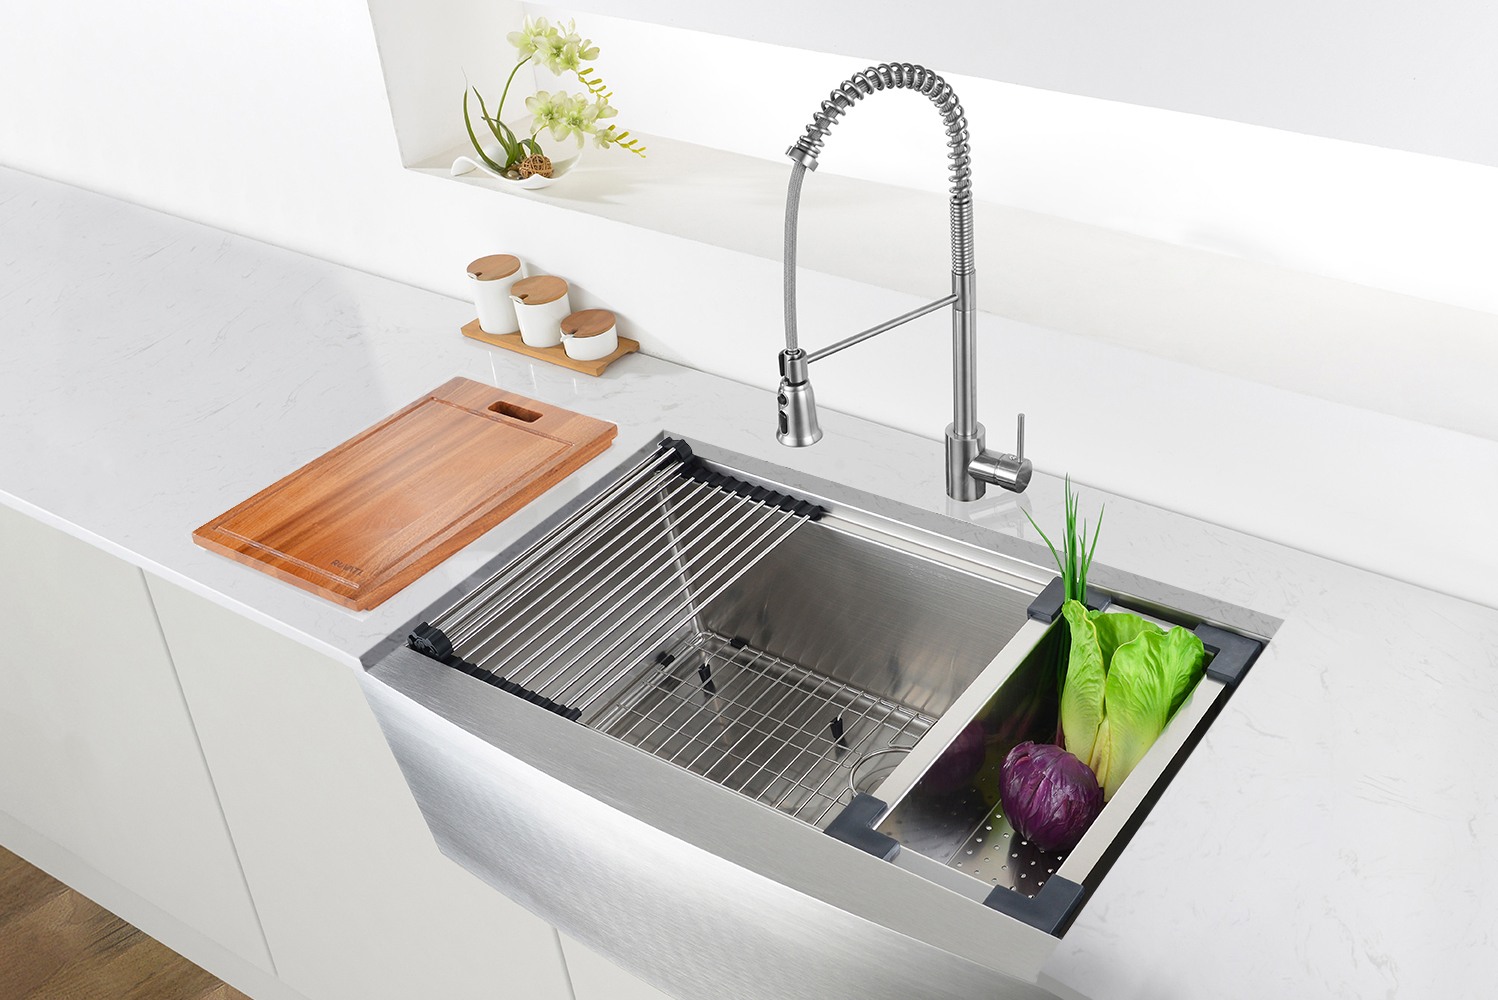 Ruvati launched Verona, a collection of workstation sinks.